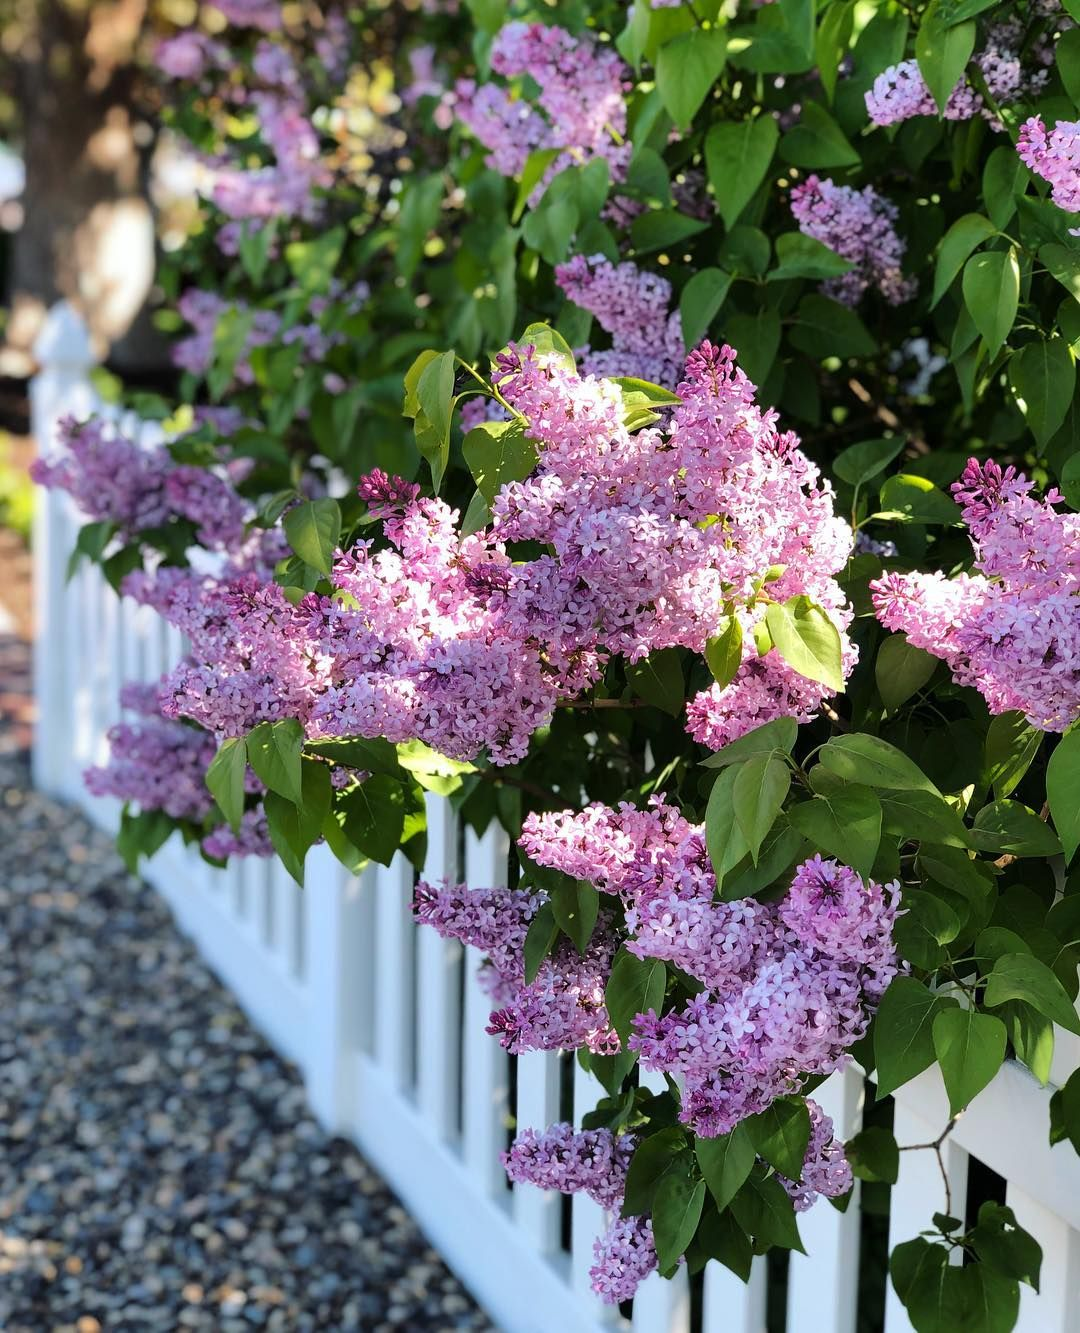 Soft Morning Light With Fragrant Lilac Filling The Air Beautiful Flowers Garden Garden Ideas To Make Flower Garden